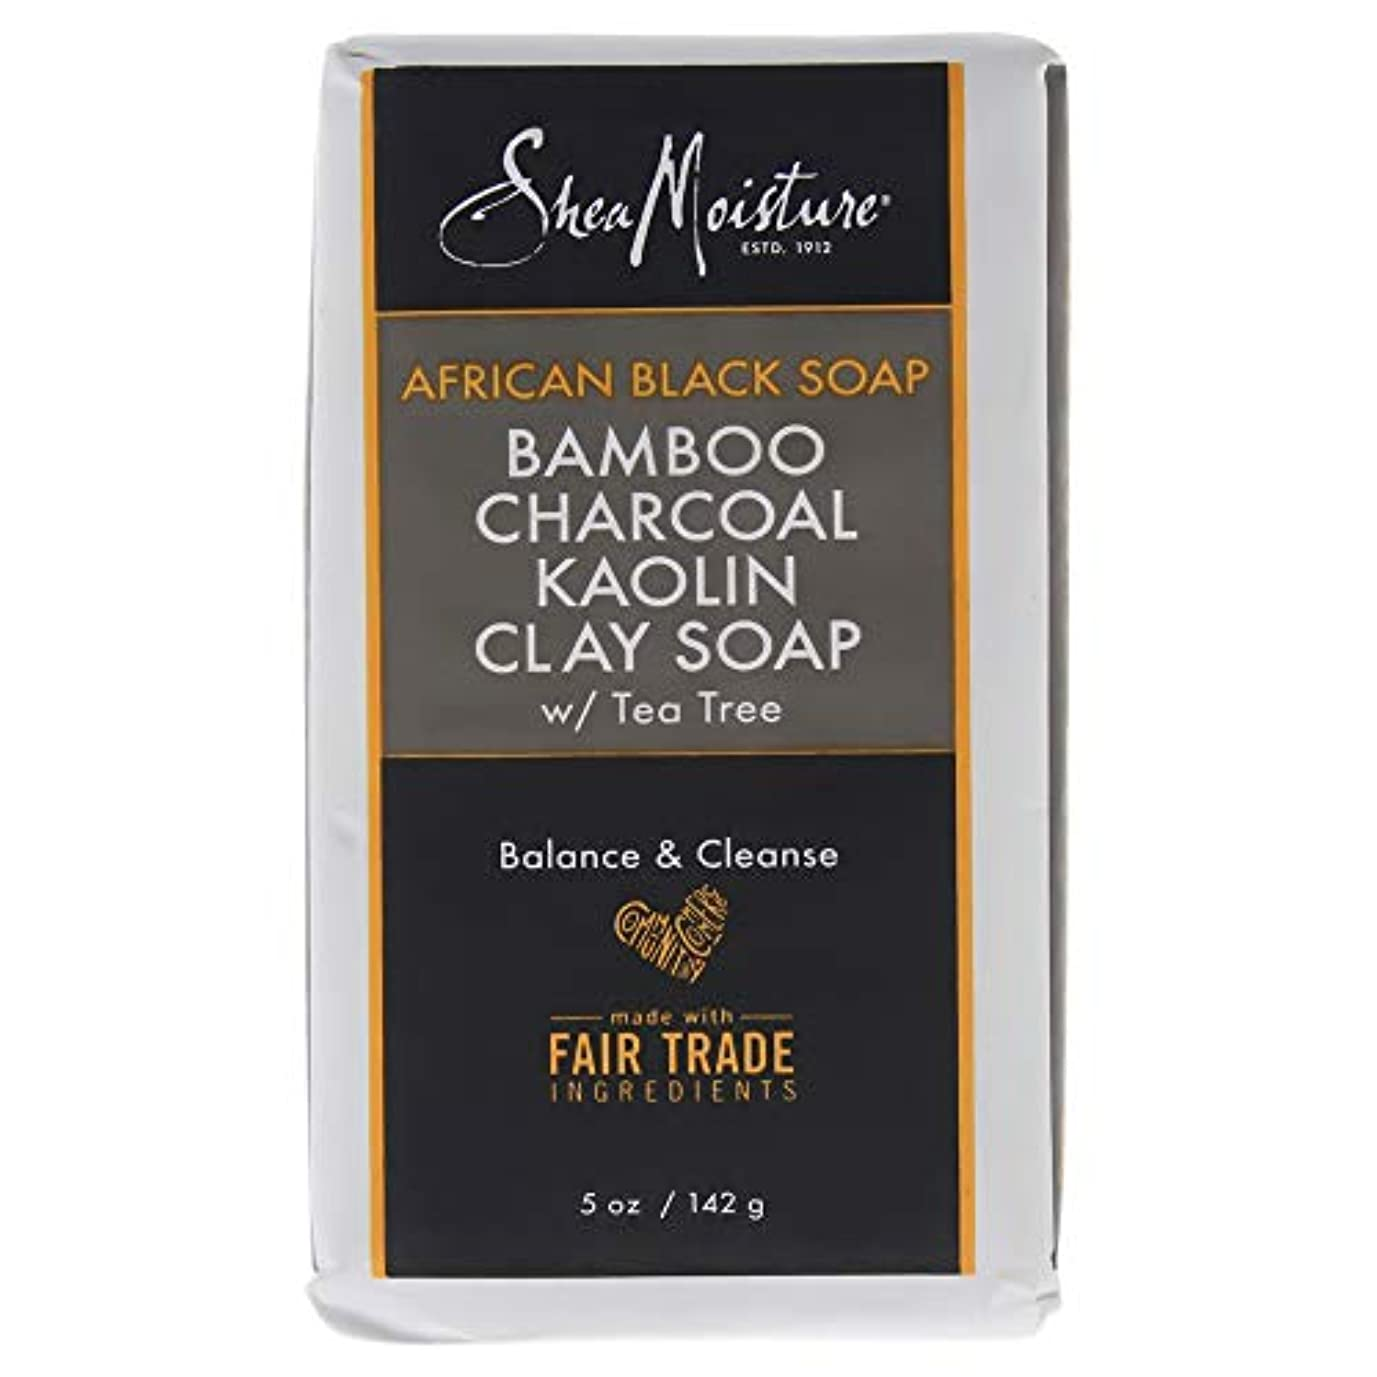 一方、スイアミューズメントAfrican Black Soap Bamboo Charcoal Kaolin Clay Soap